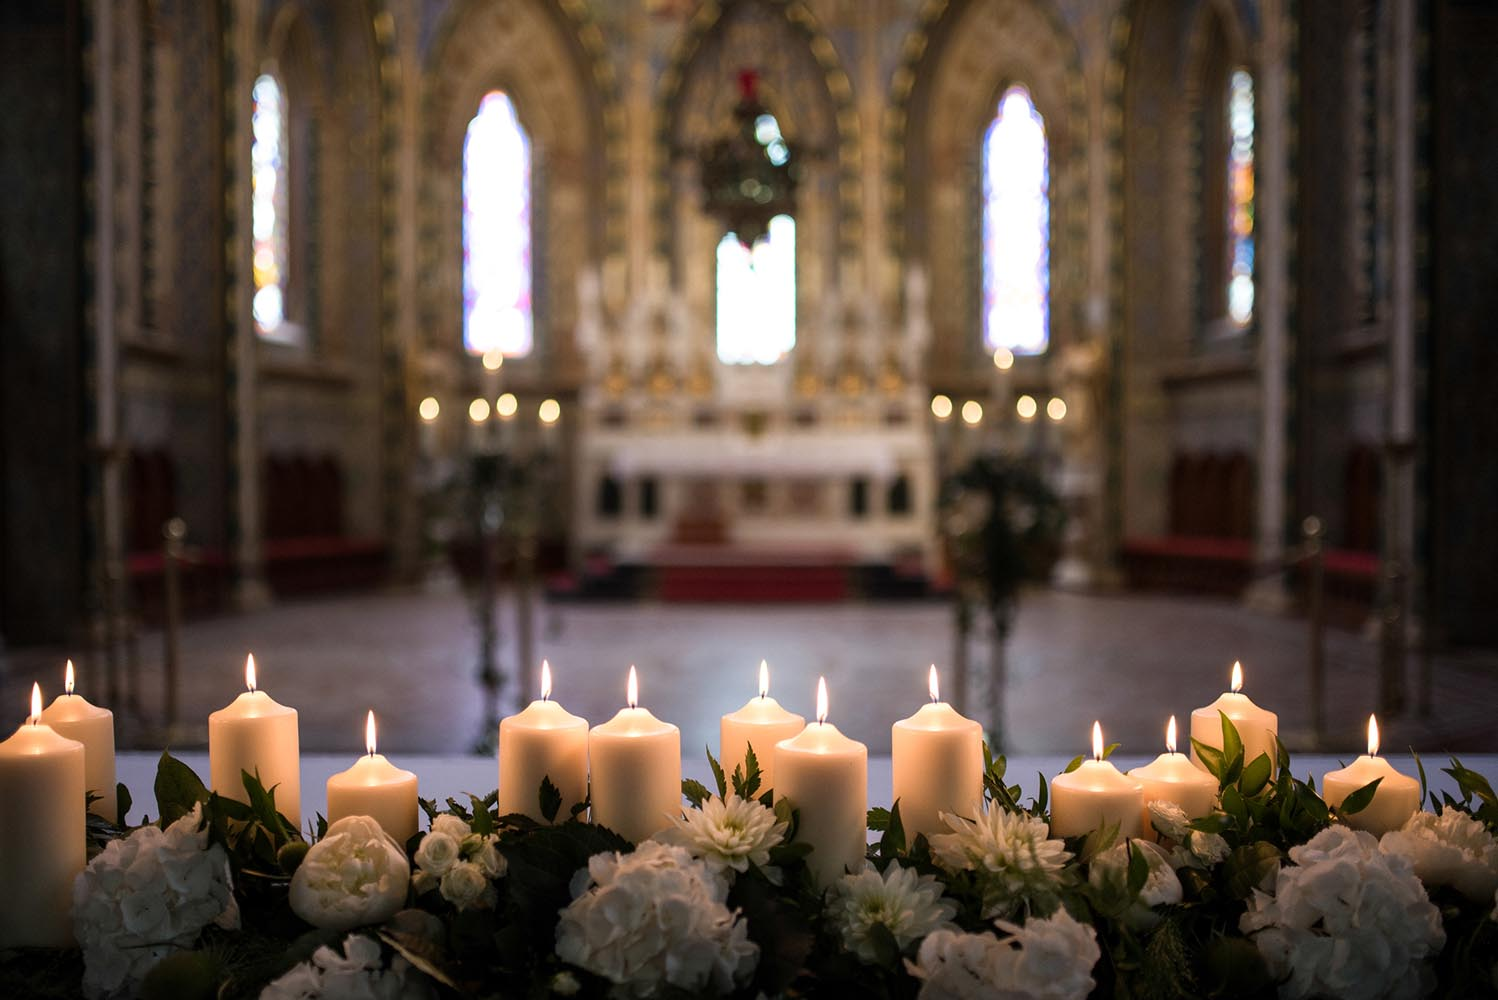 Candles lighting in church